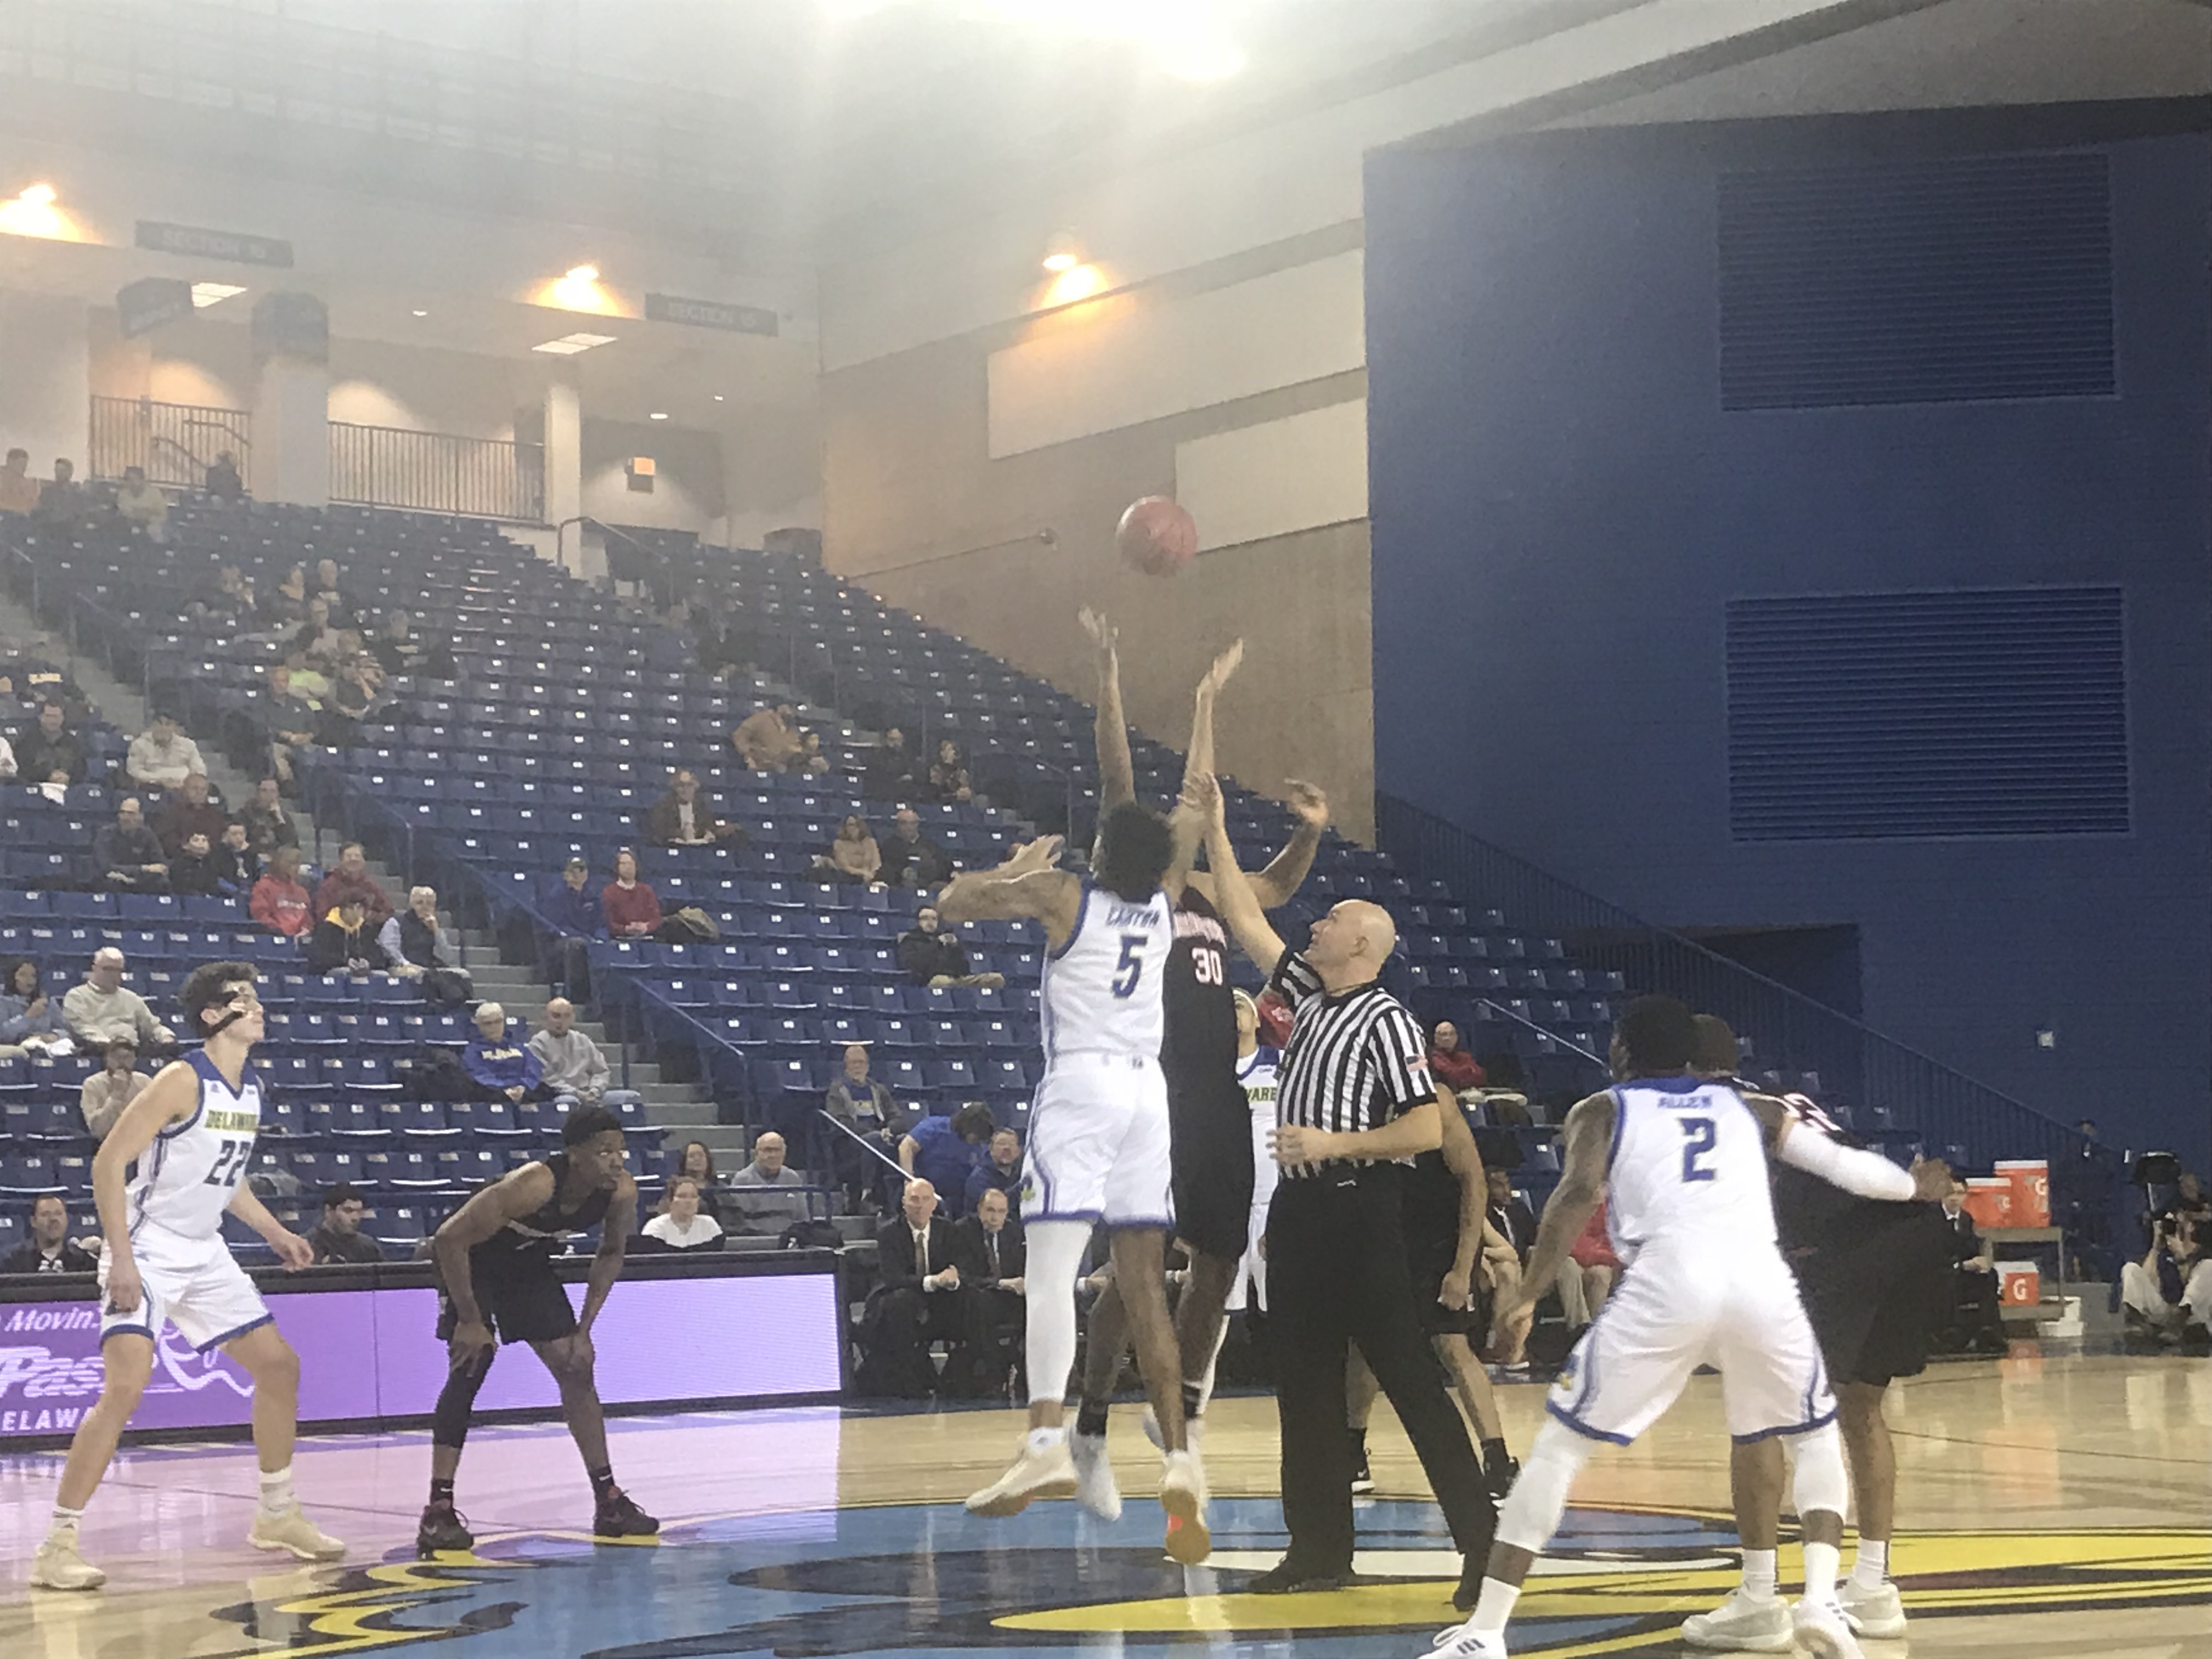 Men's and women's basketball programs moving in opposite directions